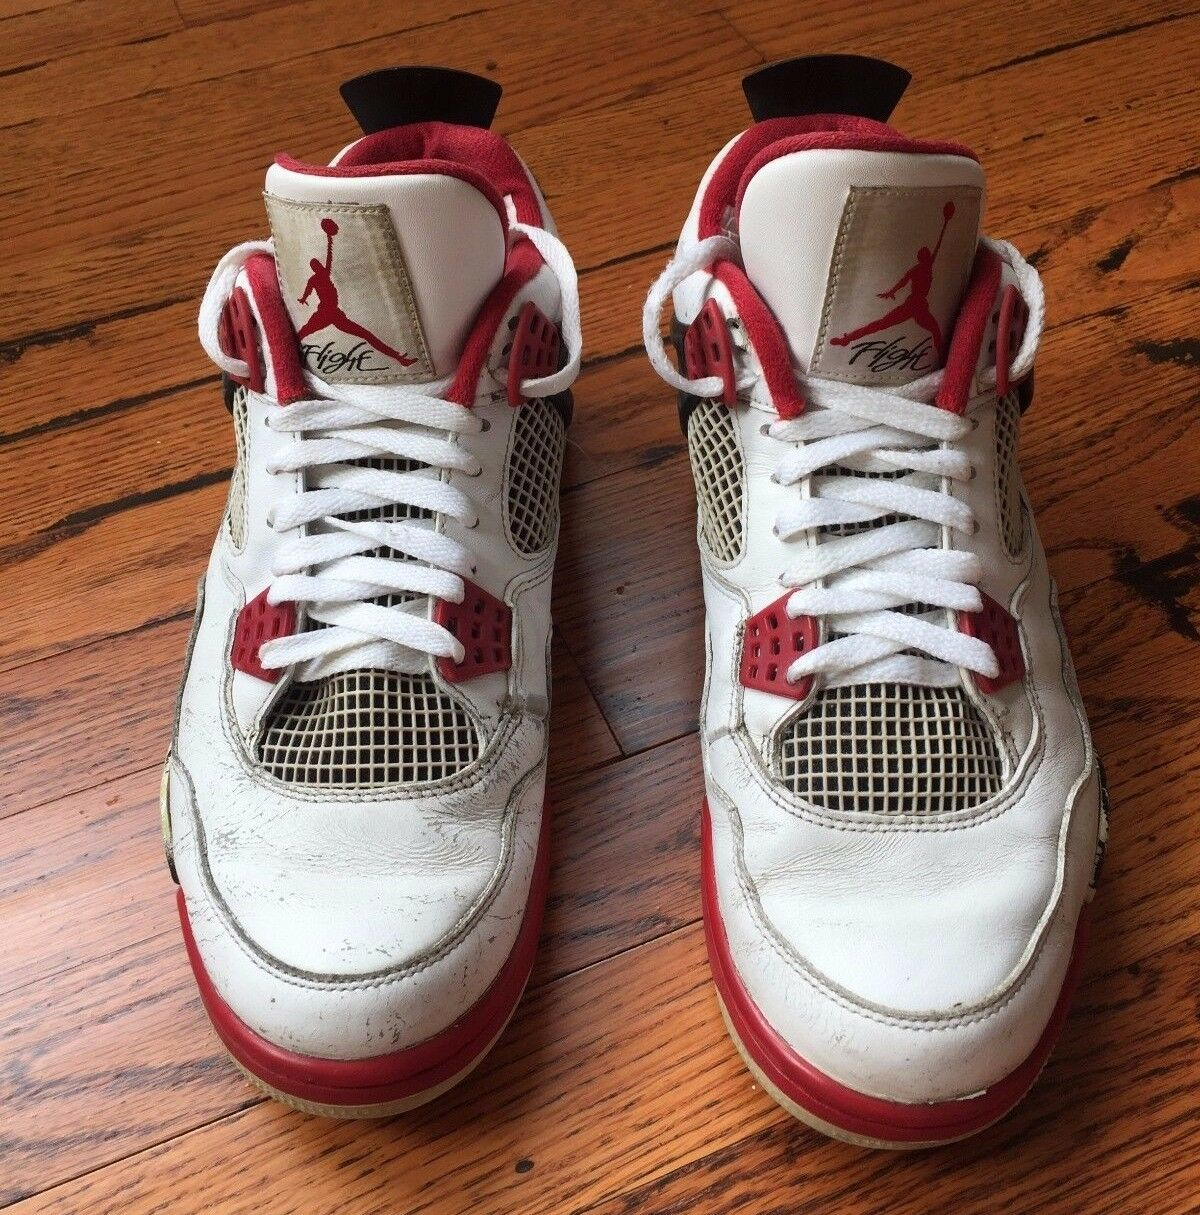 2012 Men's Air Jordan Retro IV Fire Red Price reduction Comfortable and good-looking